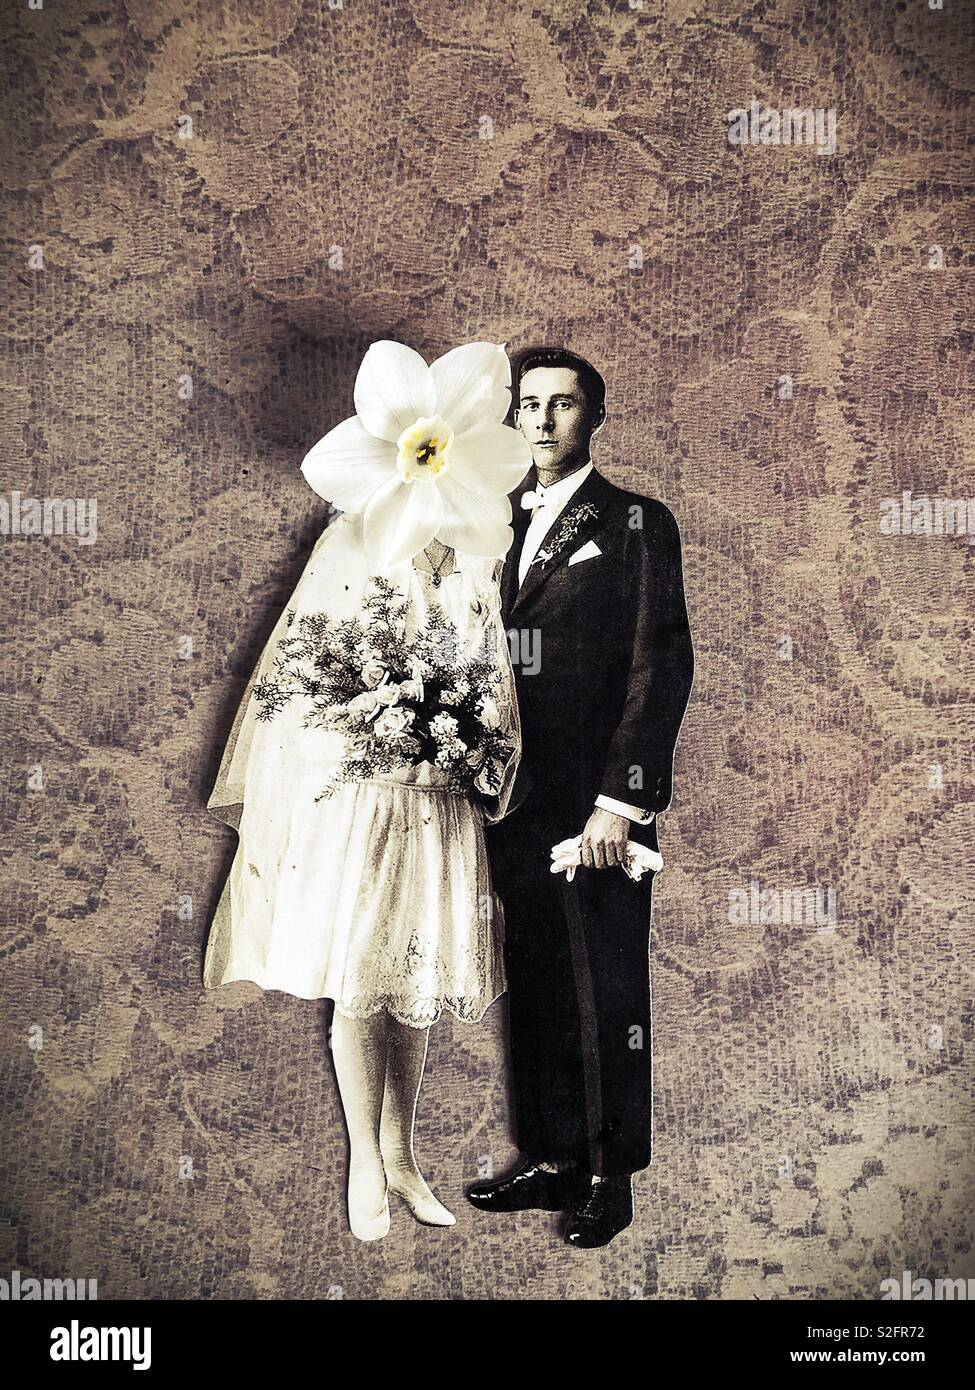 A surreal collage of bride and groom. Stock Photo